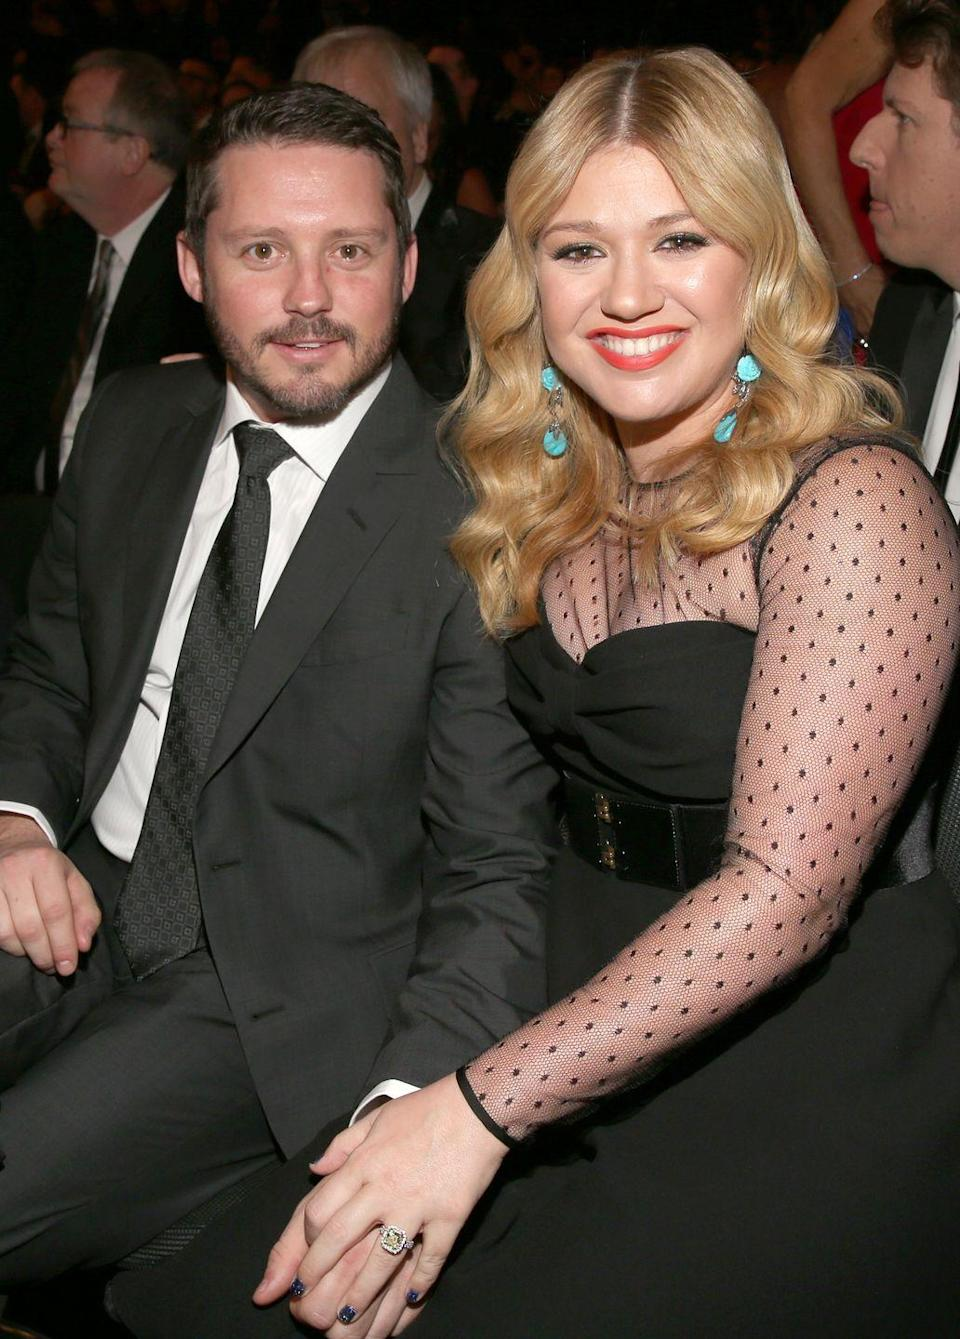 """<p>Kelly Clarkson ditched her planned October ceremony and opted for an elopement with Brandon Blackstock. """"I thought my mother was going to be [disappointed] because I'm her baby,"""" Kelly told <a href=""""https://abcnews.go.com/Entertainment/kelly-clarksons-mom-surprising-reaction-eloping/story?id=20542434"""" rel=""""nofollow noopener"""" target=""""_blank"""" data-ylk=""""slk:ABC News"""" class=""""link rapid-noclick-resp"""">ABC News</a>. """"I thought that was going to be weird but she totally got it. She actually responded, 'I'm just happy I don't have to buy a dress!'"""" </p>"""